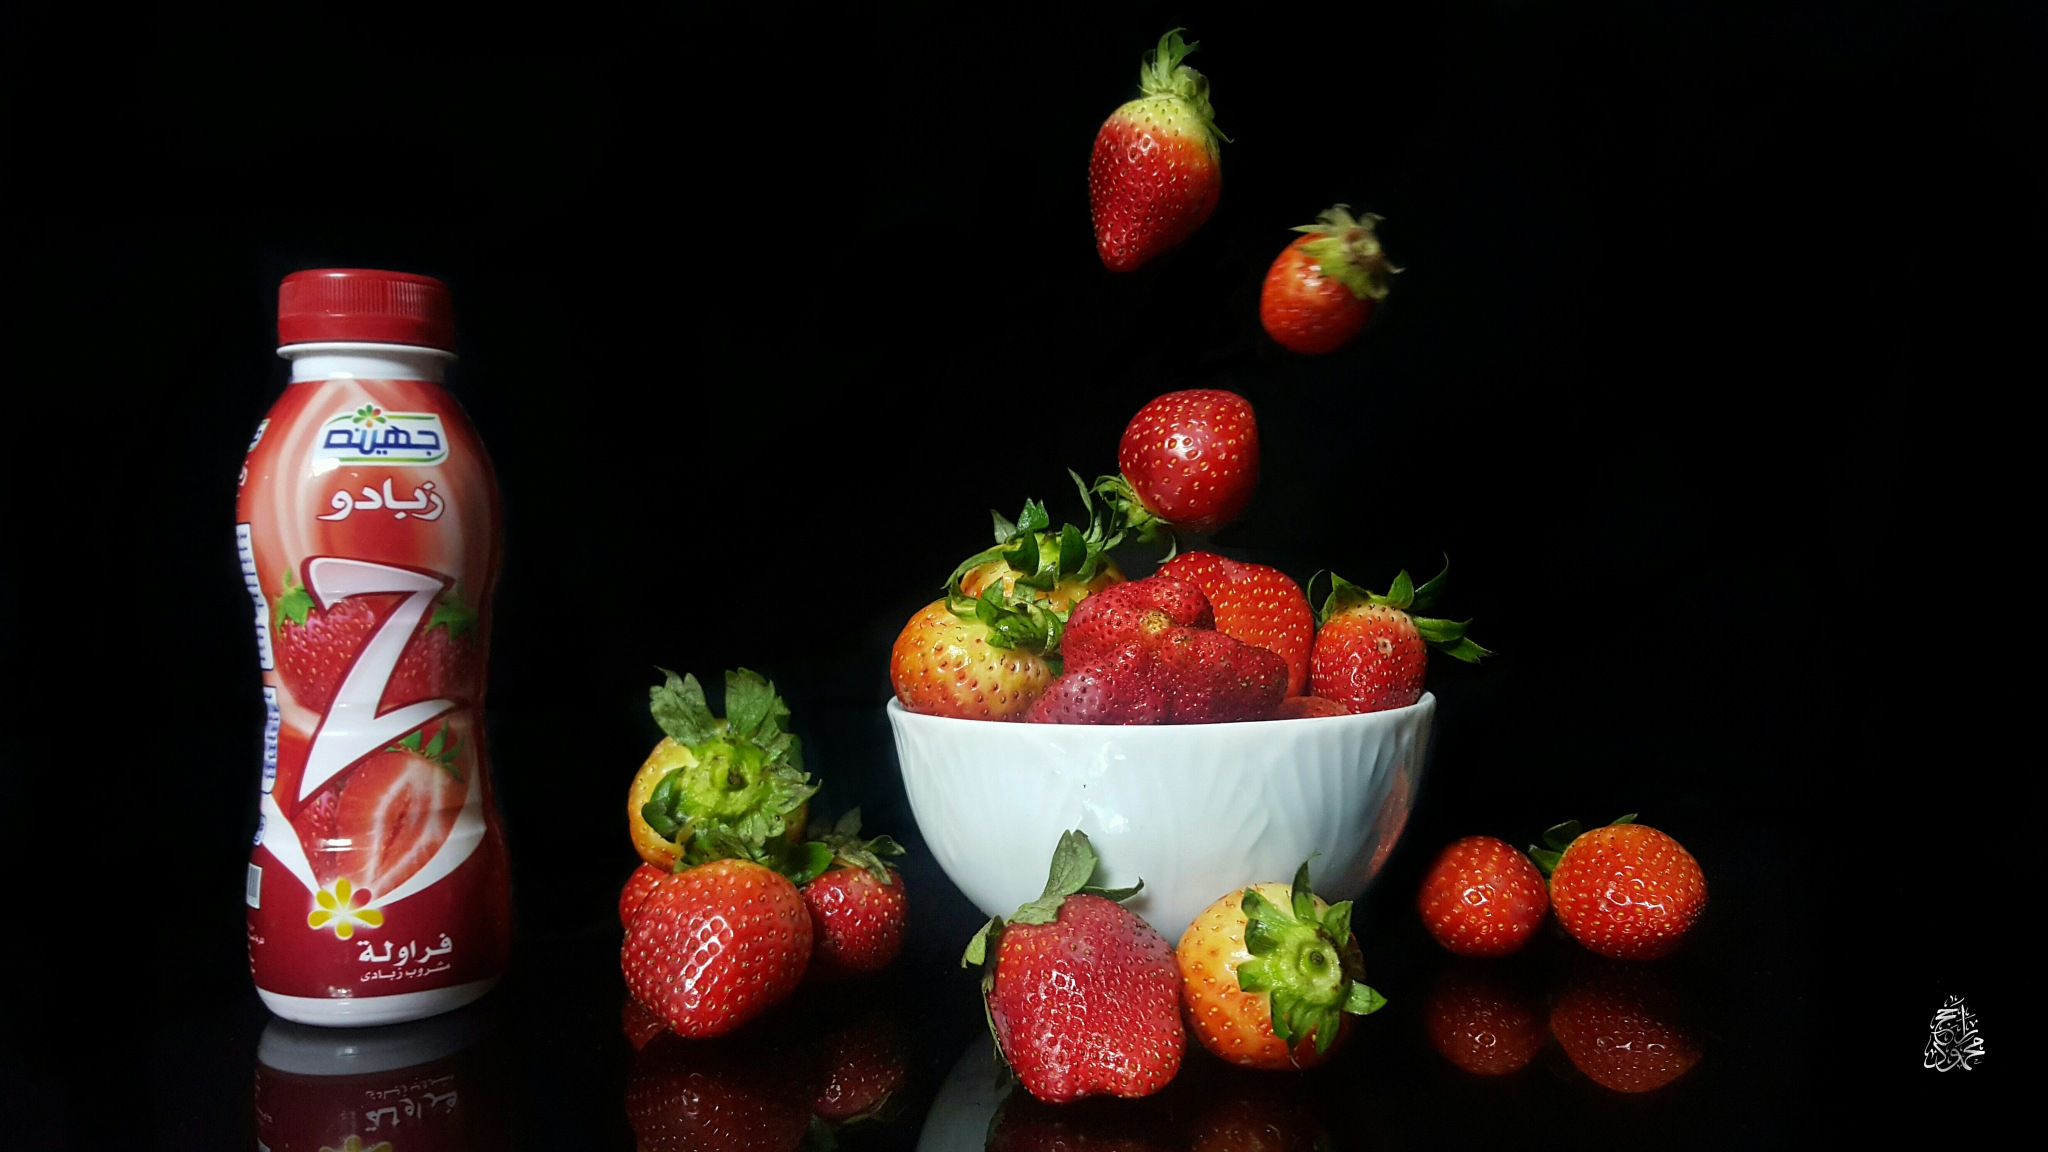 Strawberry flavored yogurt :D by Mahmoud Rageh